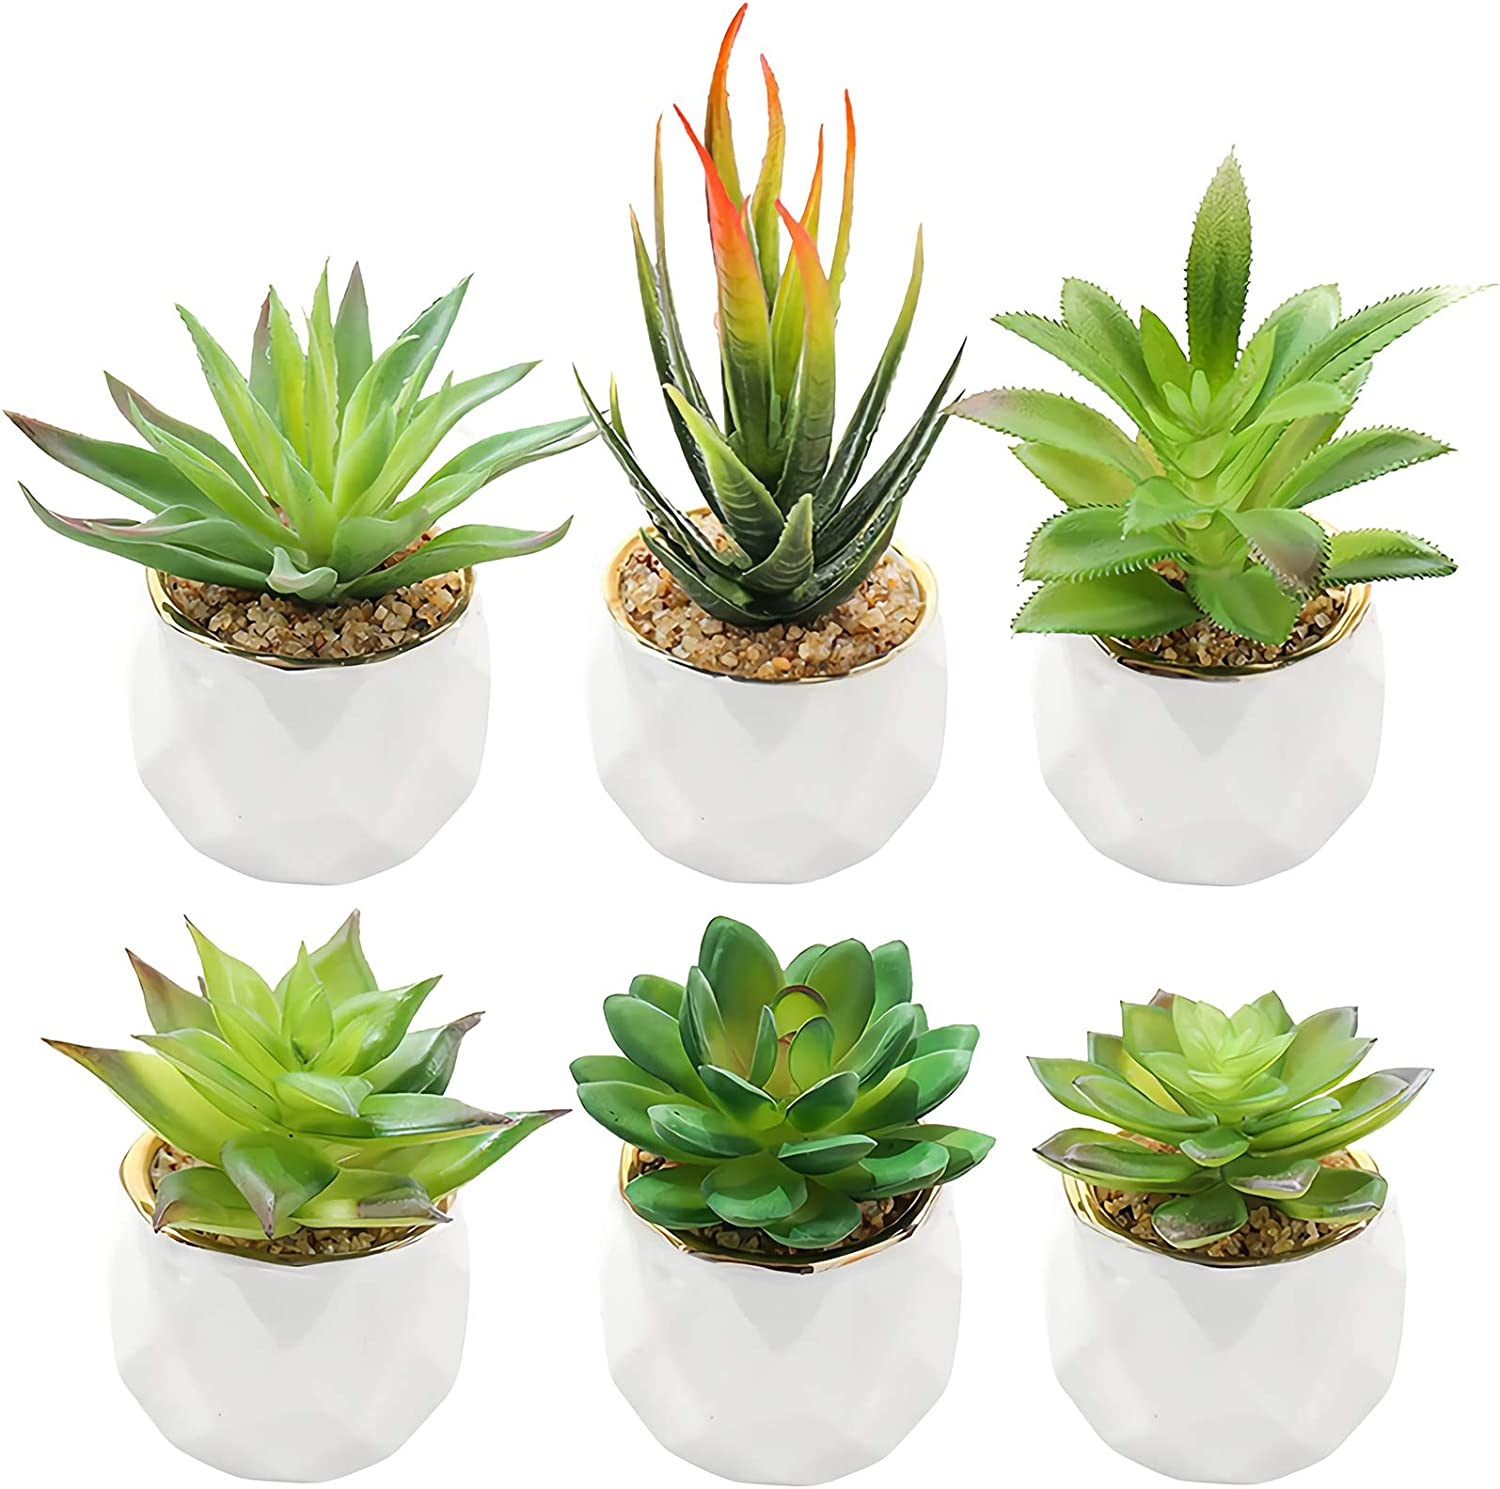 Hedume Set of 6 Fake Succulent Plants, Artificial Succulents in Geometric Ceramic Planter Pots with Gold Rim, Mini Realistic Fake Plants for Home and Office Decoration, 2 3/4